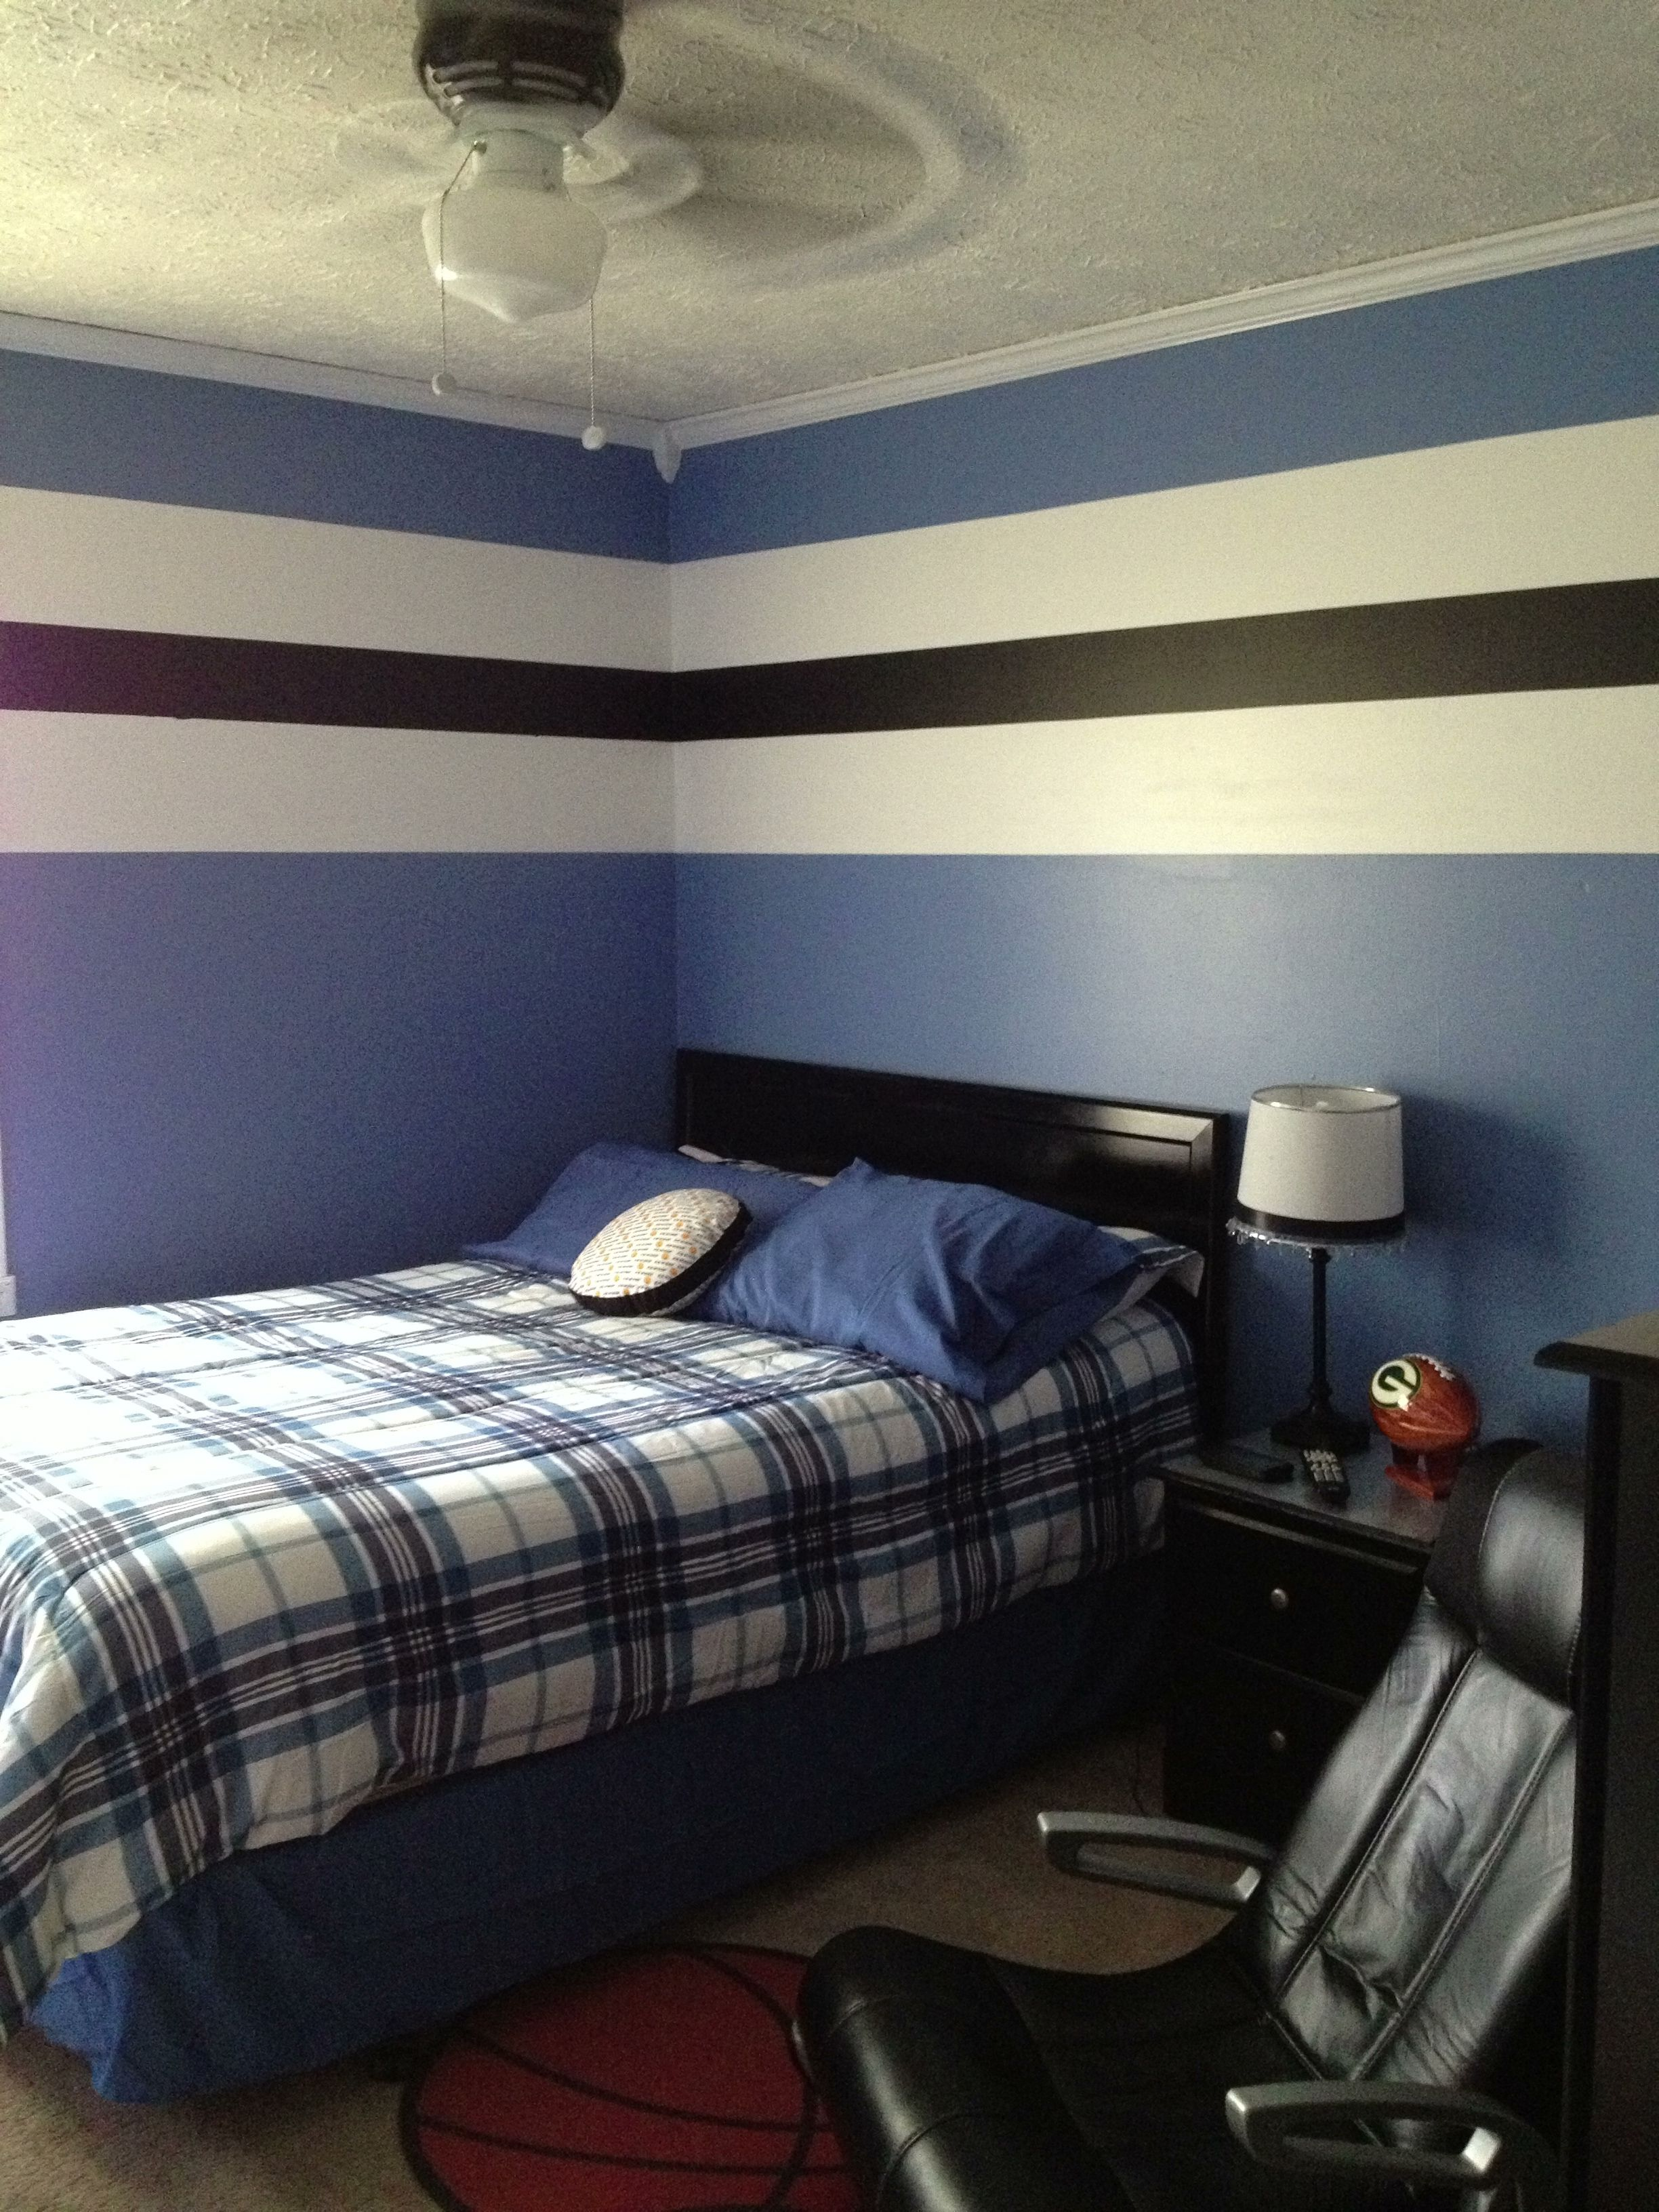 Teenage boys bedroom ideas - Teen Boy Bedroom Make Over